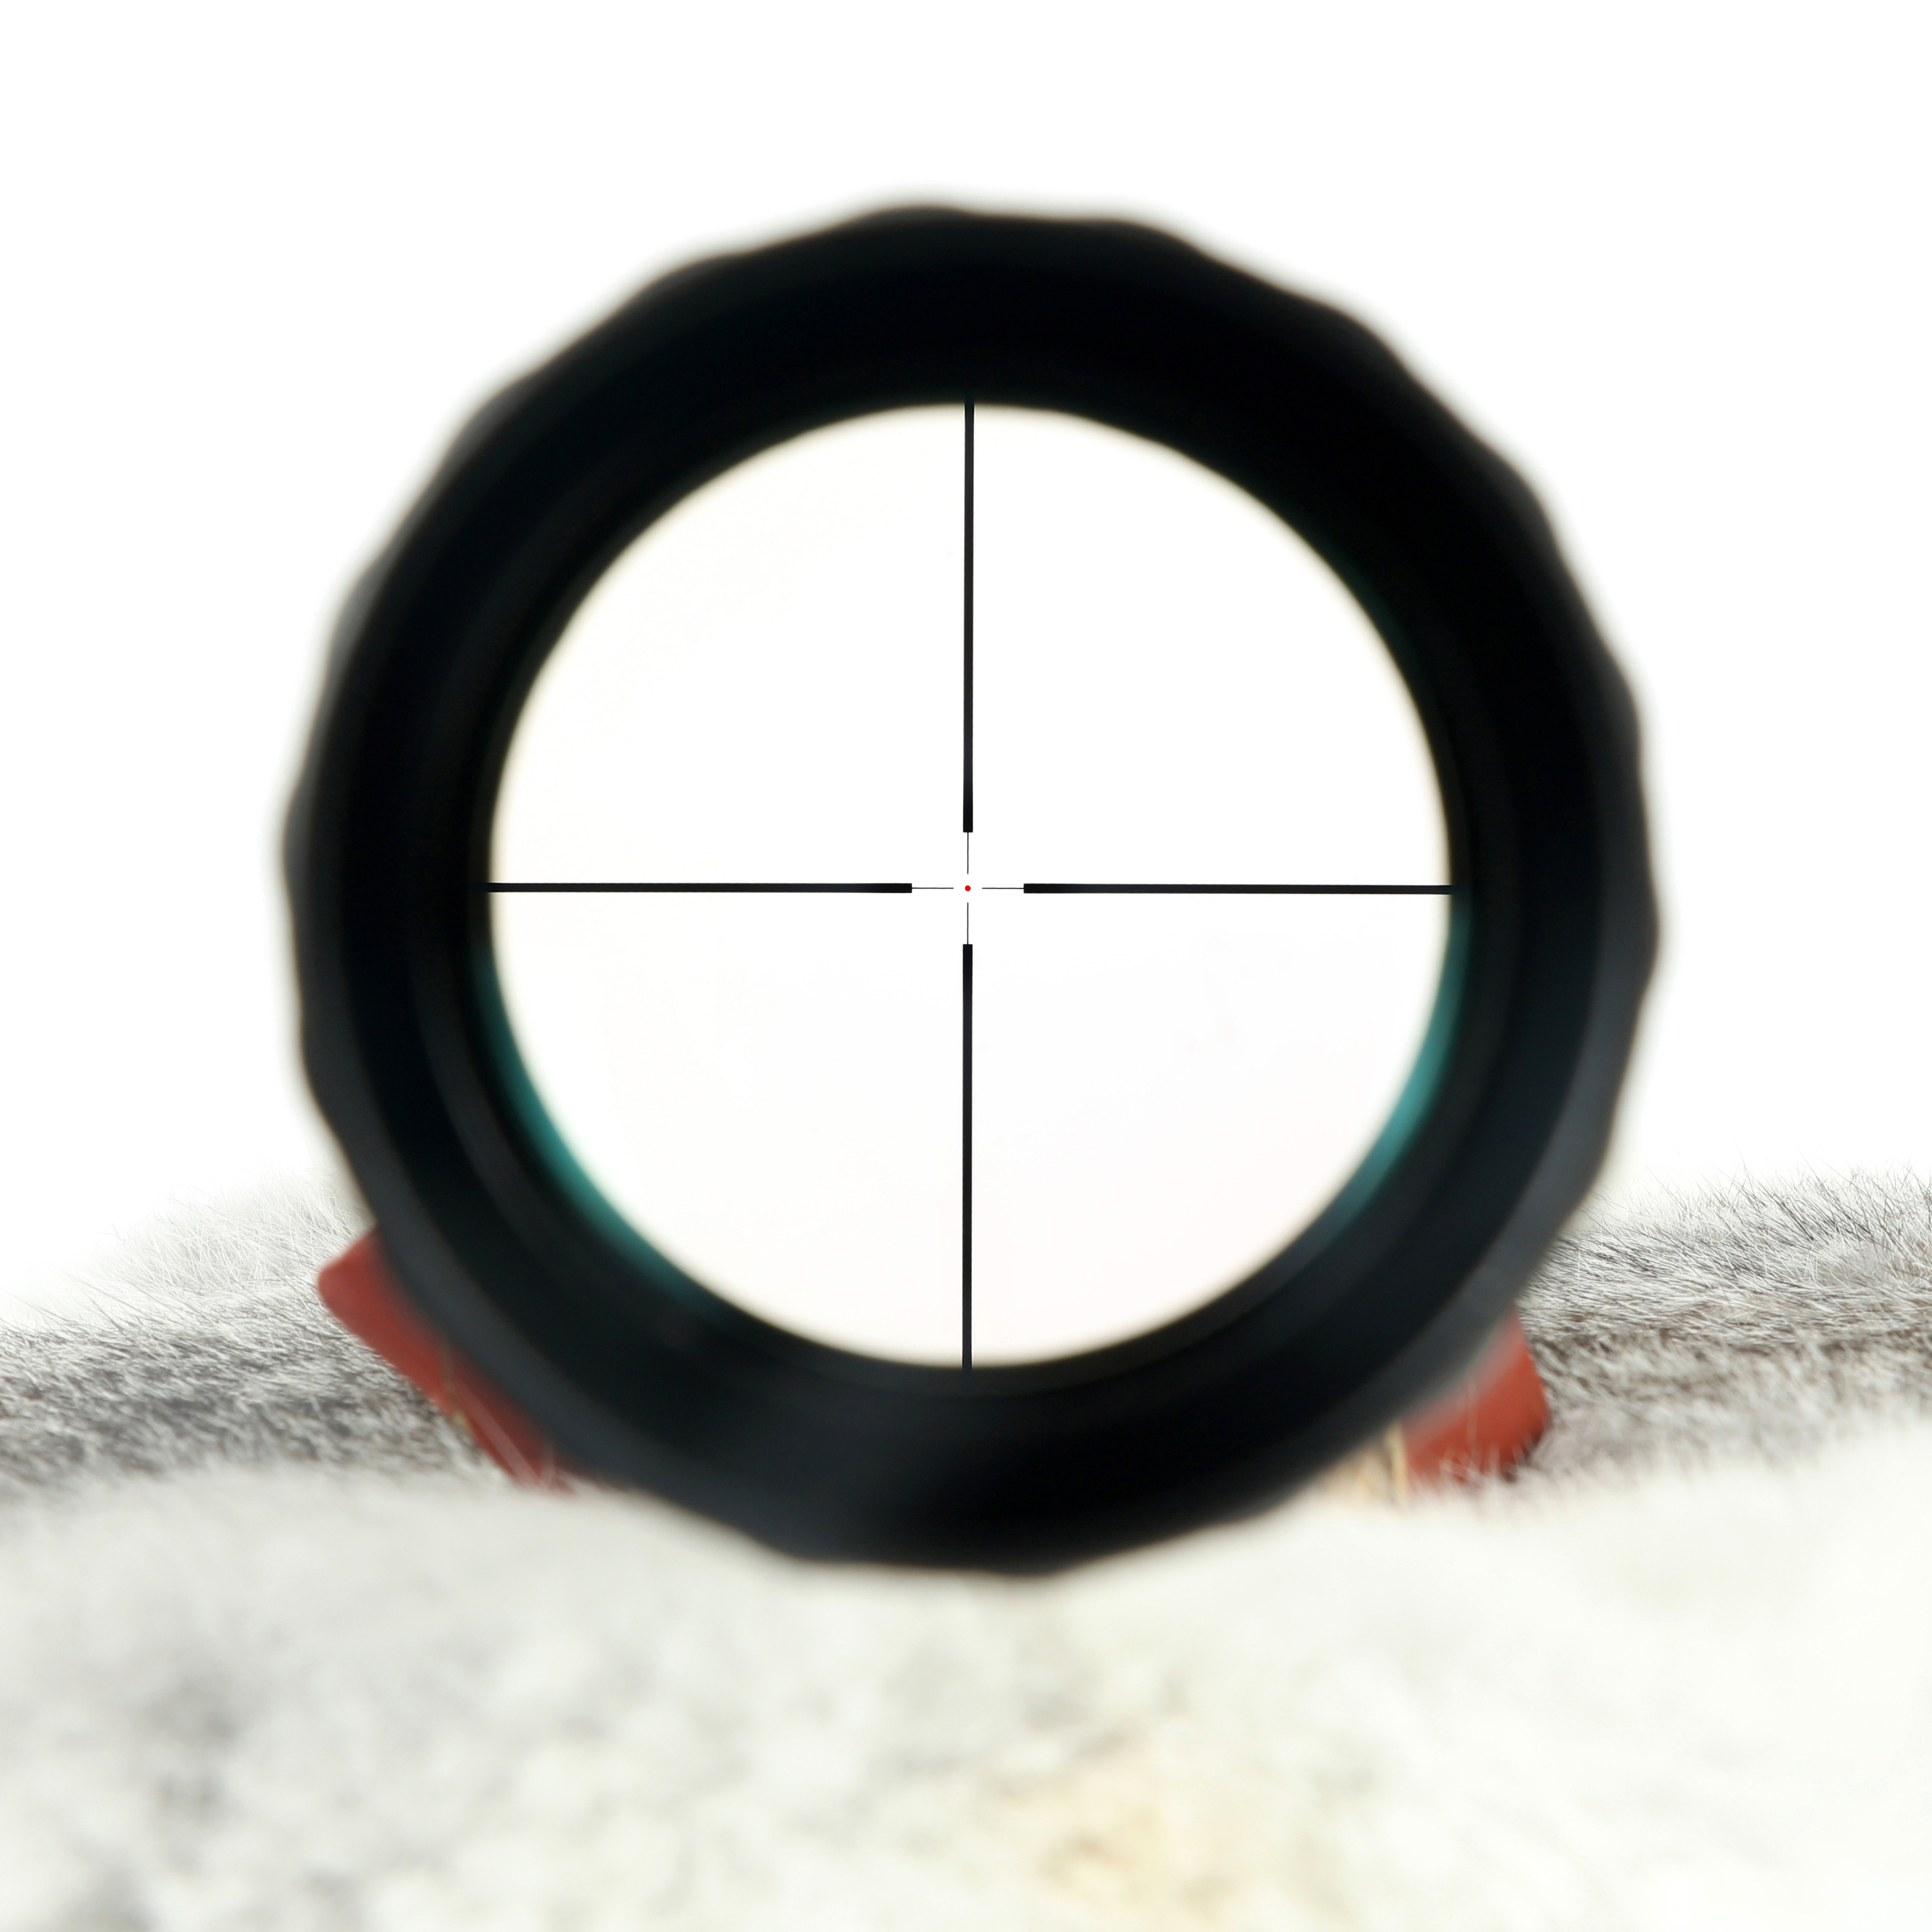 Hunting Walther Optical Sight PRS 1 6X24 Riflescope Optics Rifle Sight Hunting optical Red dot Green dot Hunter Gun in Riflescopes from Sports Entertainment